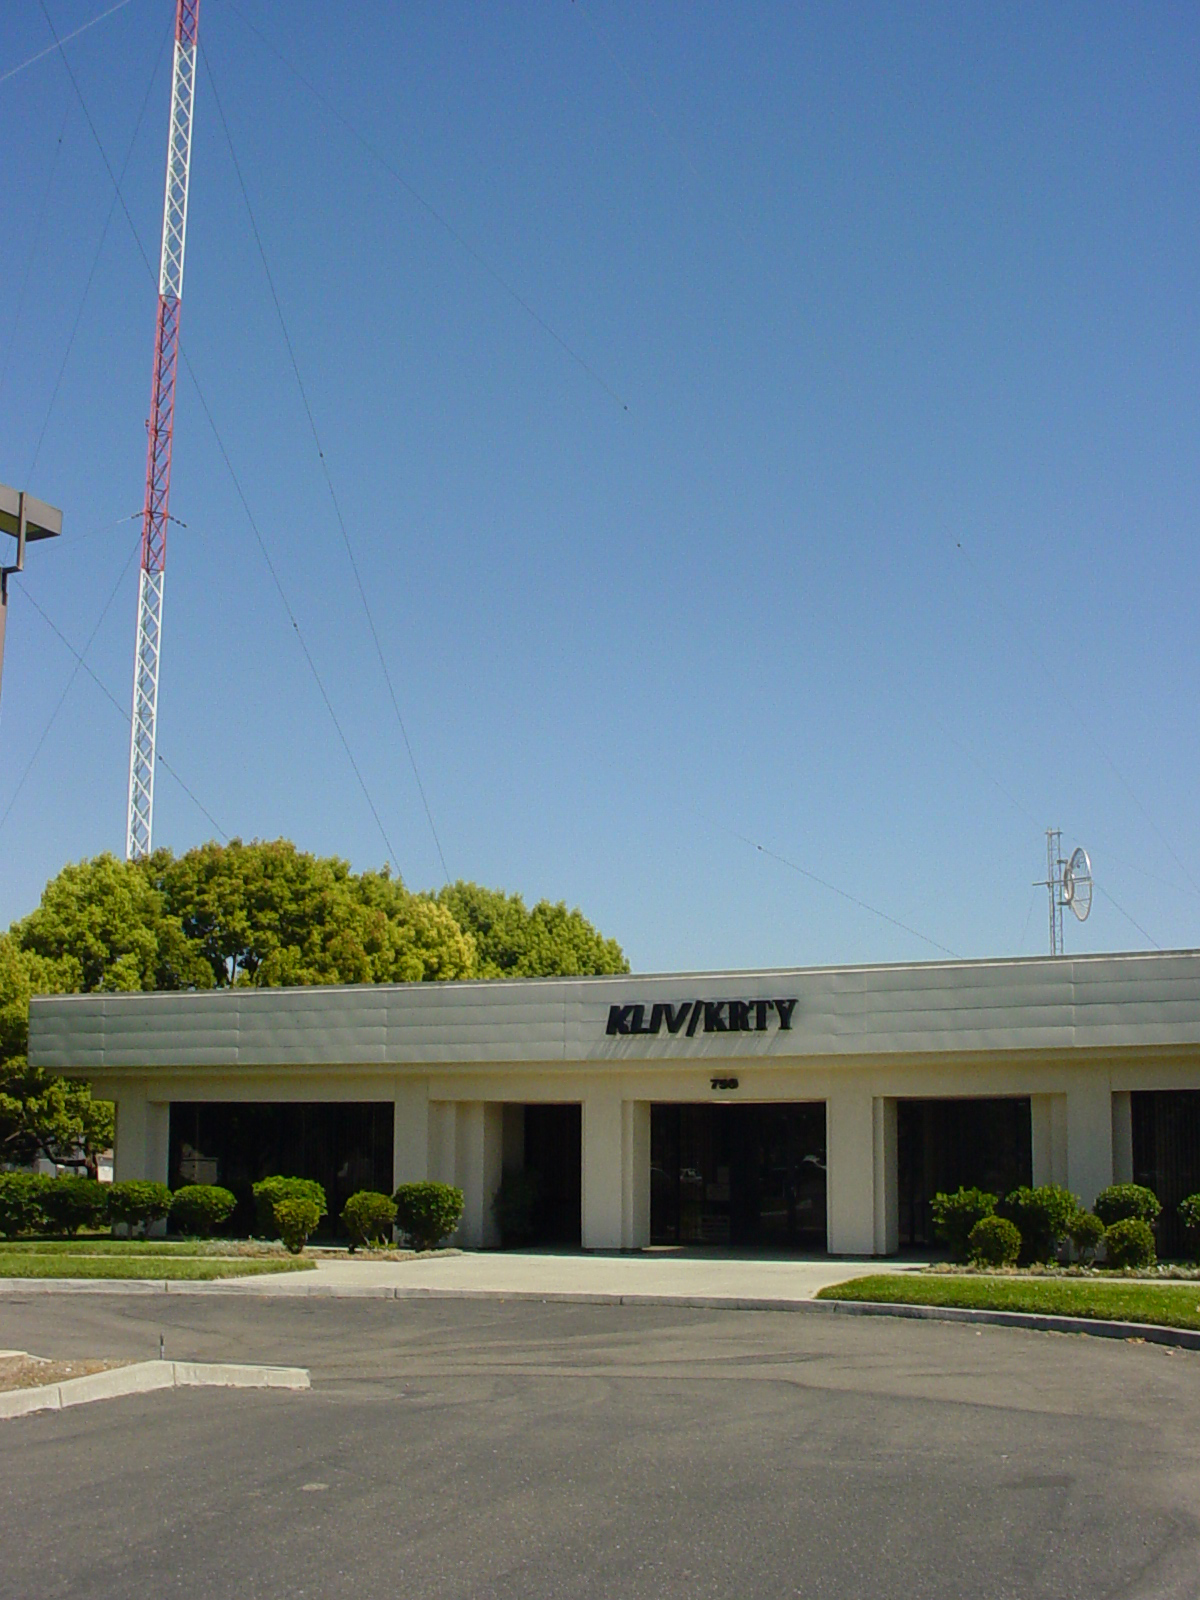 KLIV-KRTY Radio Building (Photo)